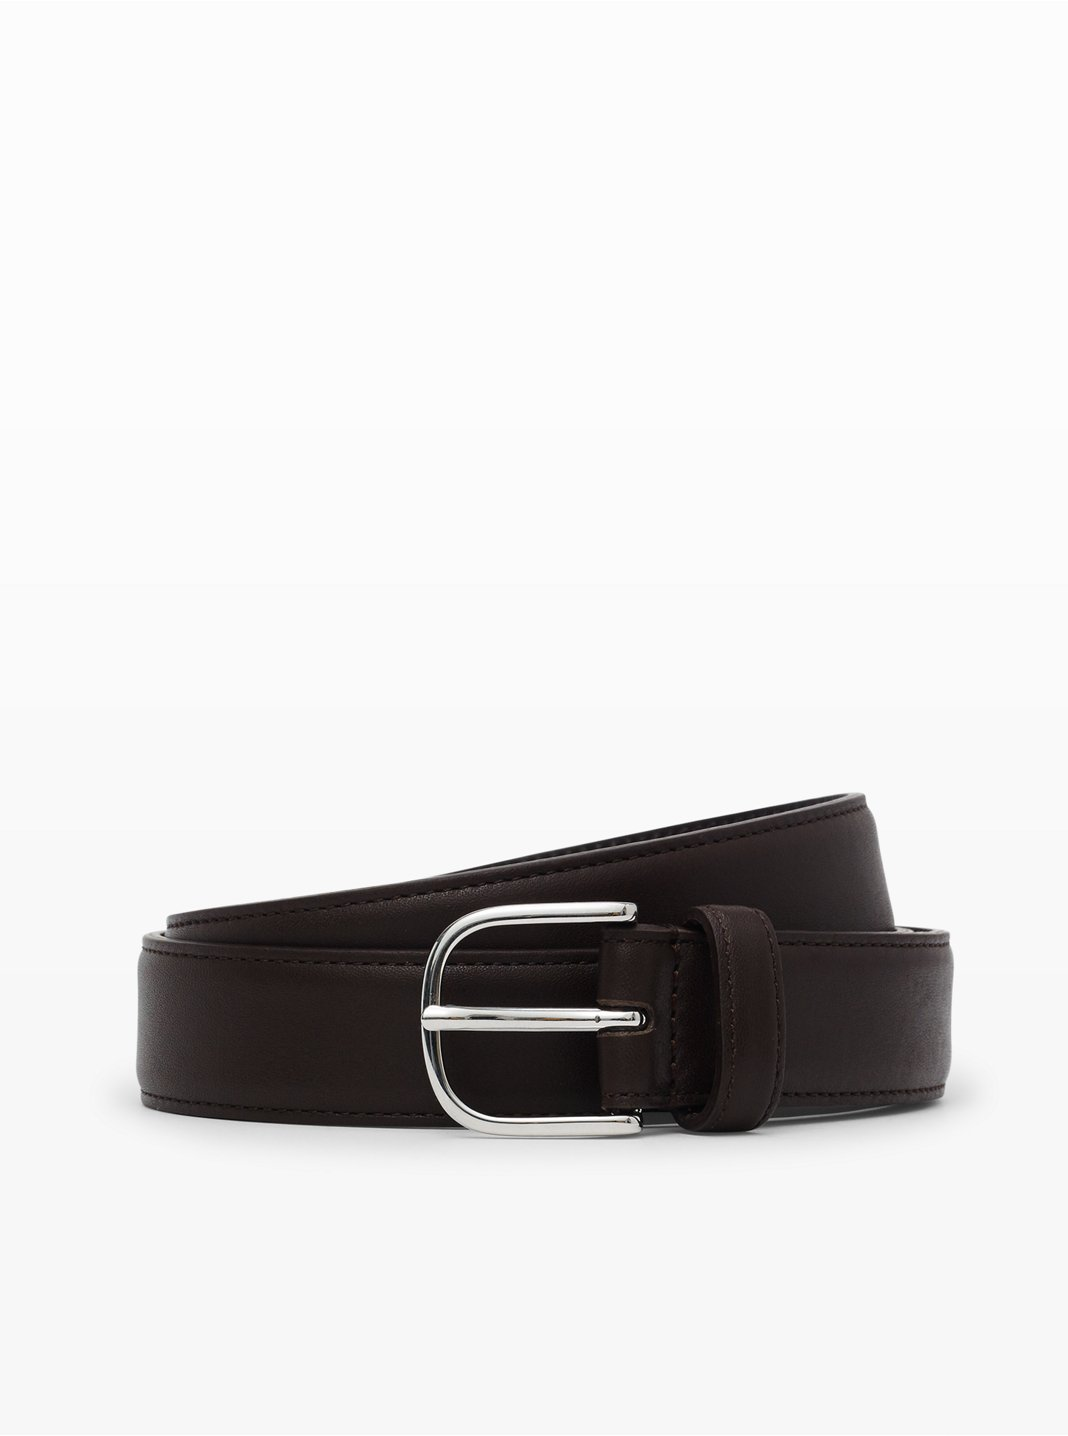 Leather Dress Belt